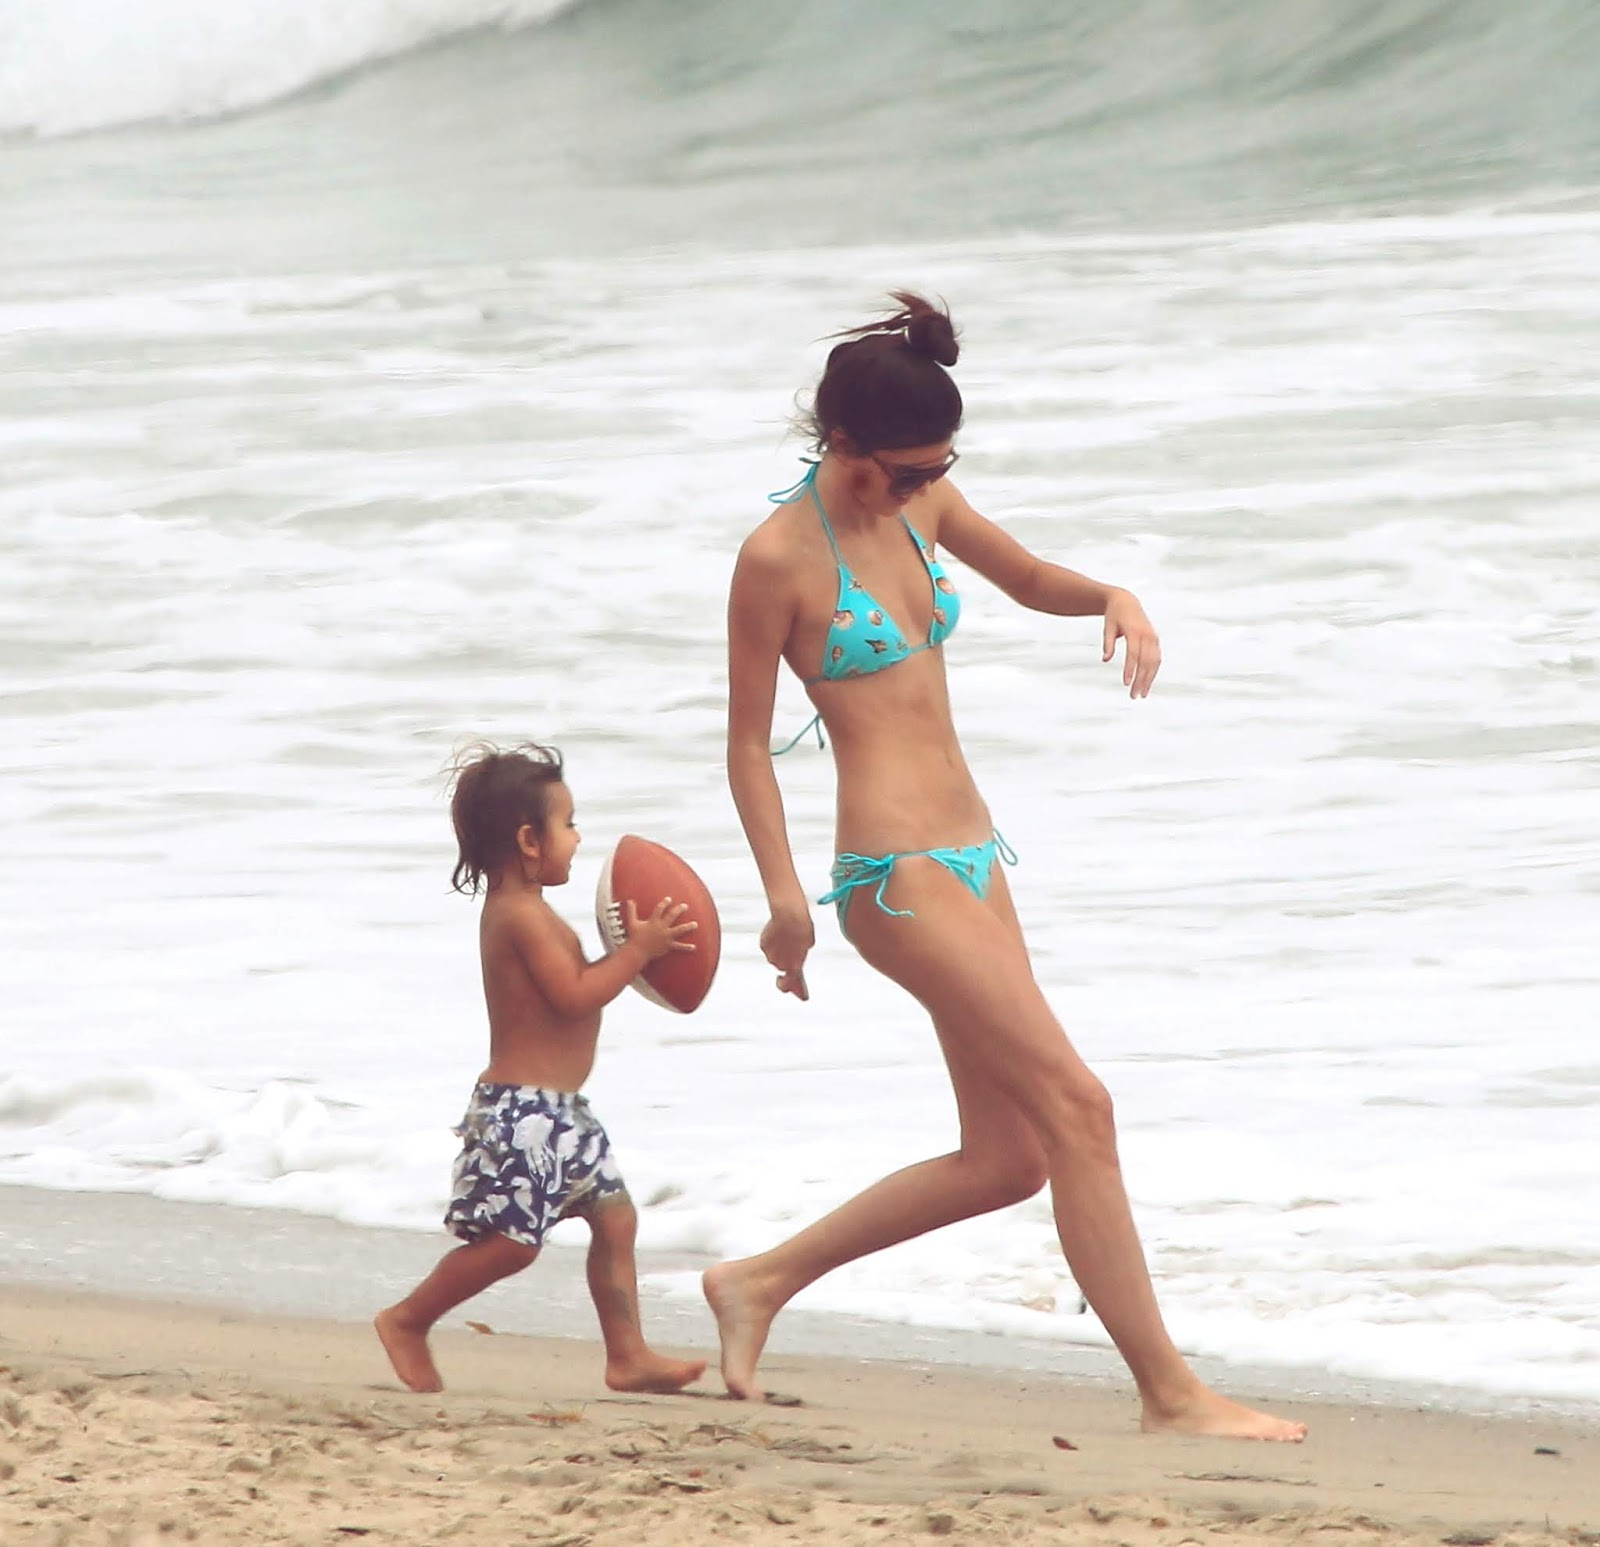 32 - At a Beach with friends in Malibu California on July 14, 2012